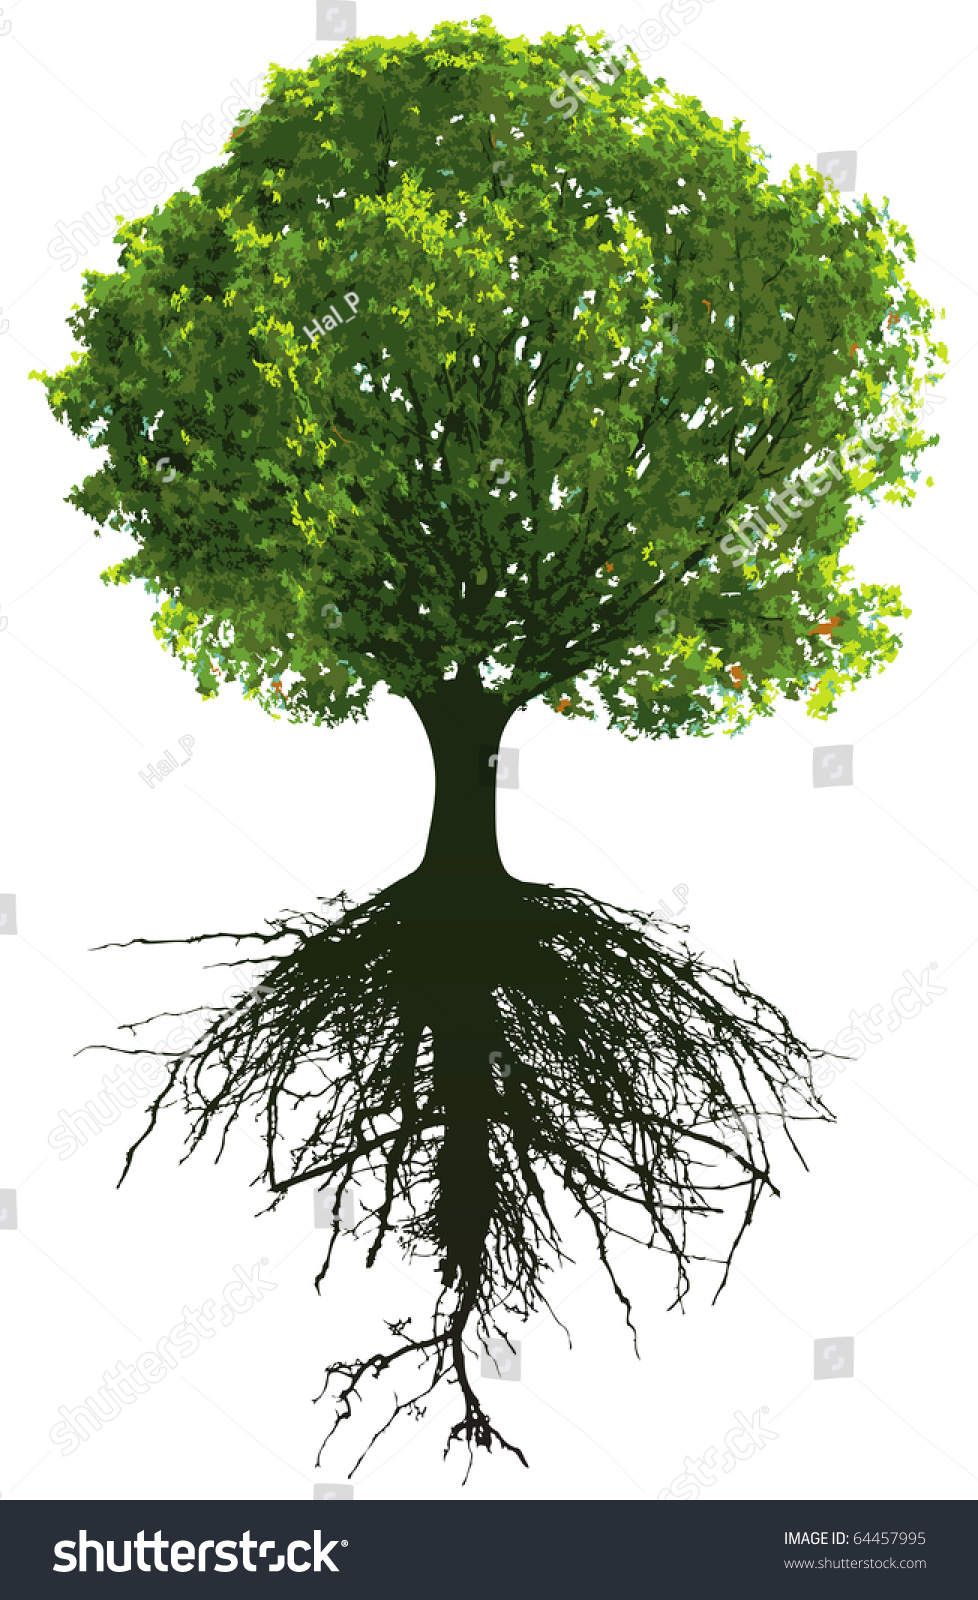 Vector Illustration Tree: Trees Roots This Image Vector Illustration Stock Vector